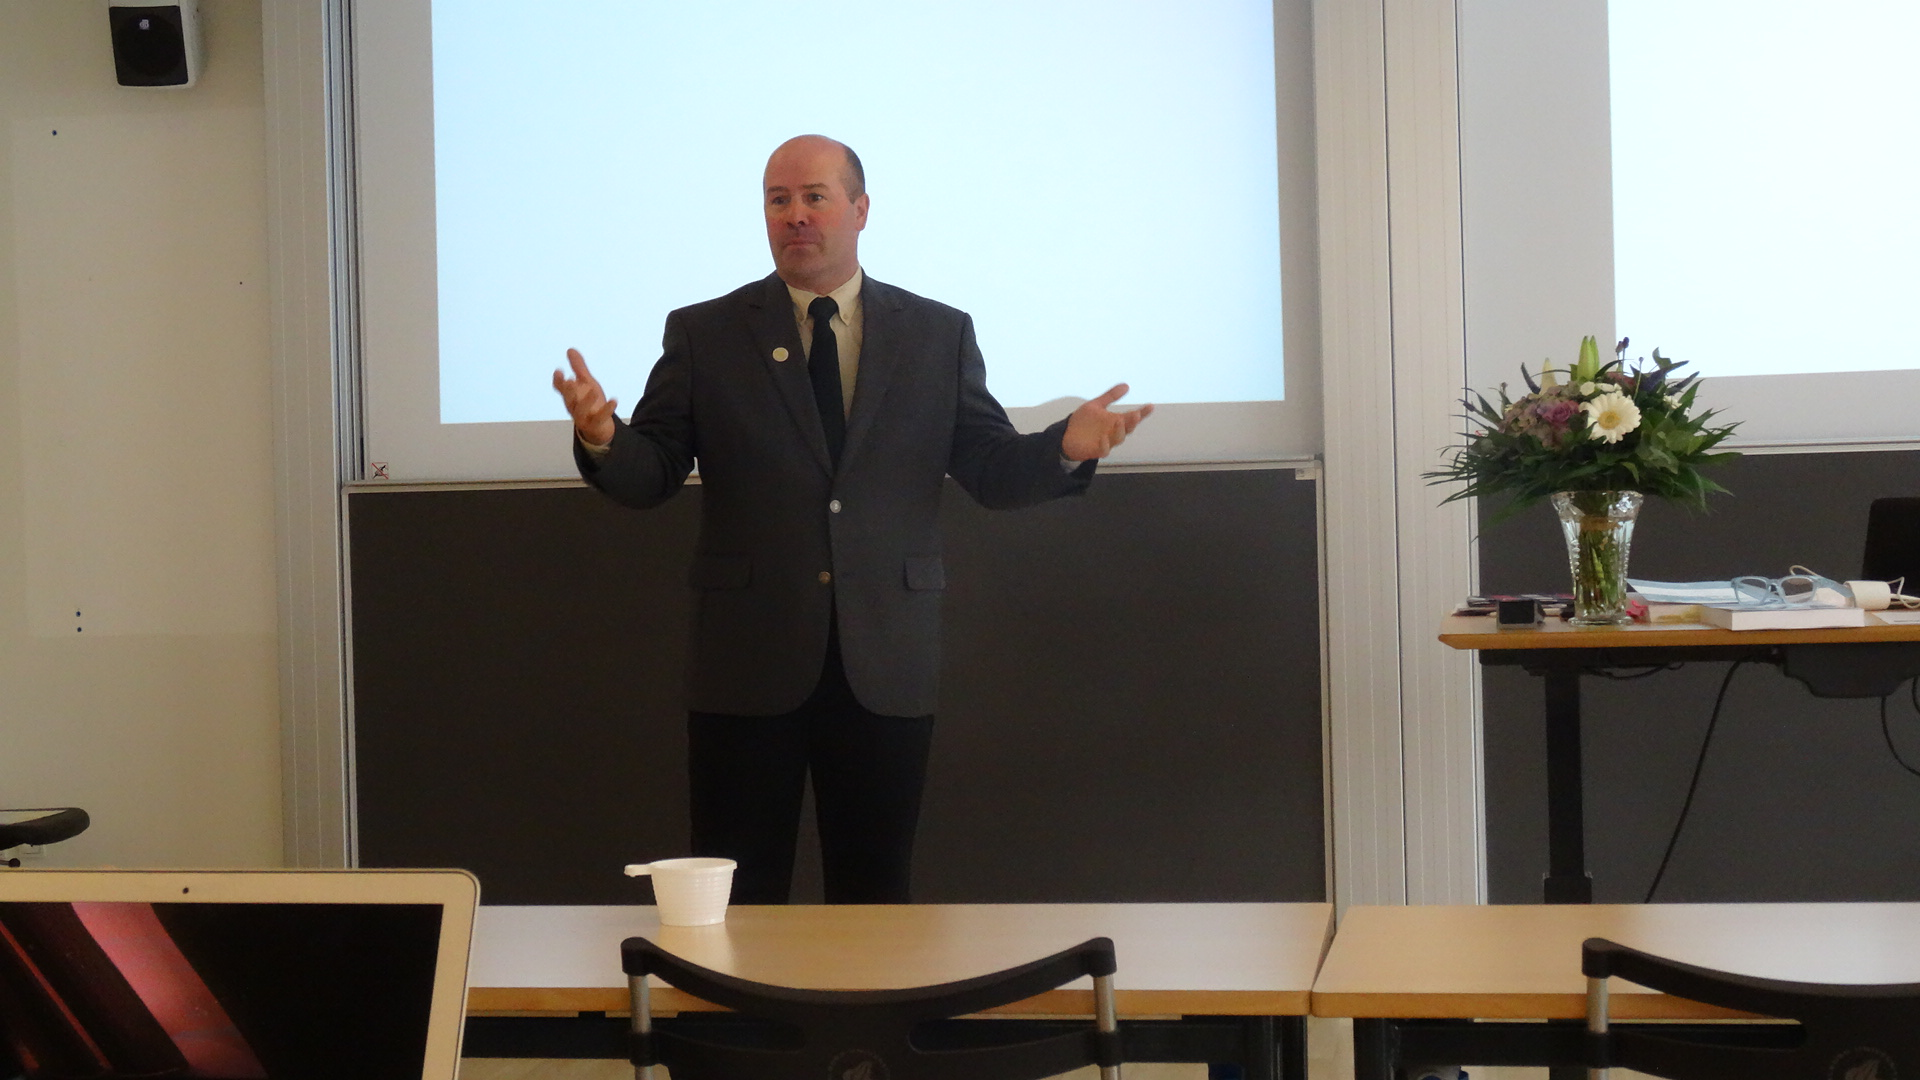 PhD defense by Ronald Ulseth